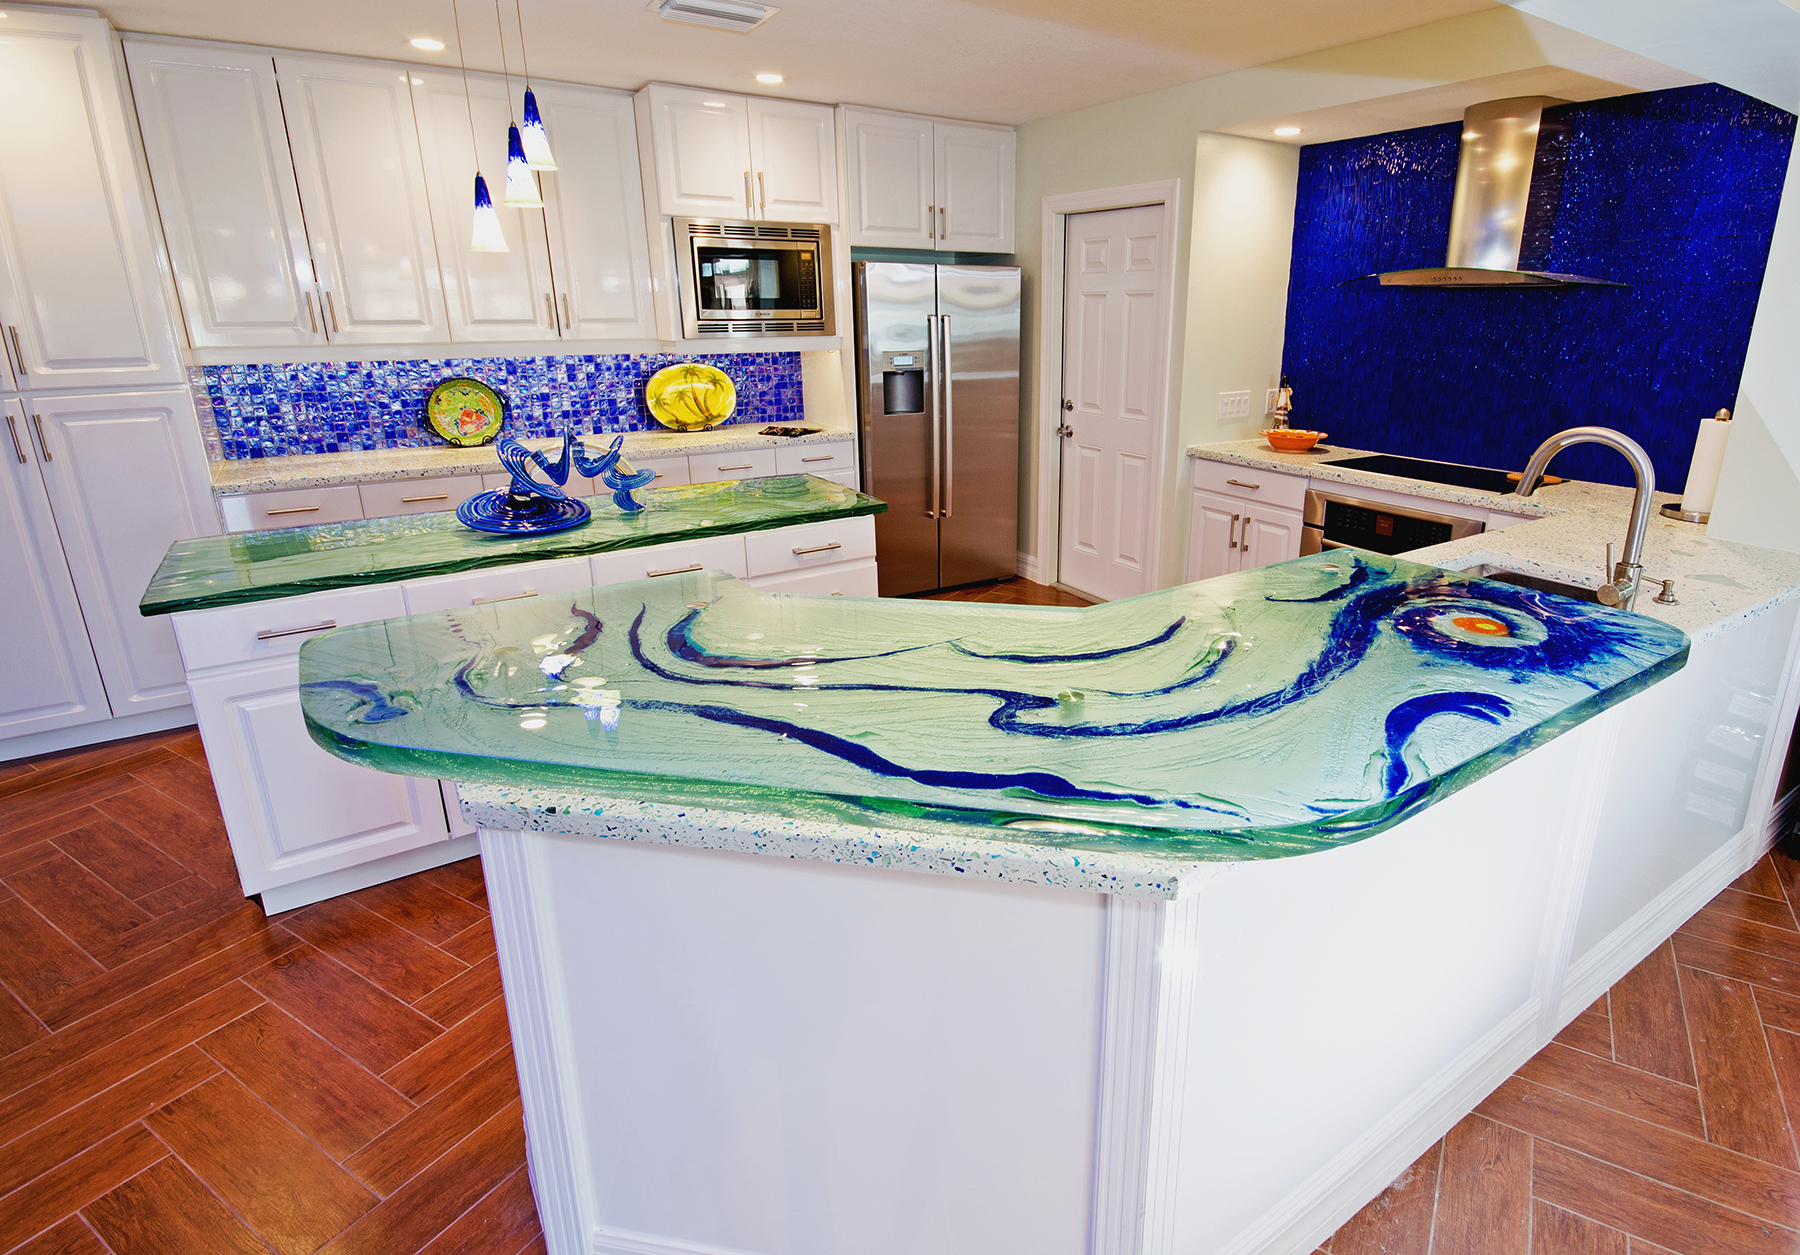 Glass Countertops. Countertops